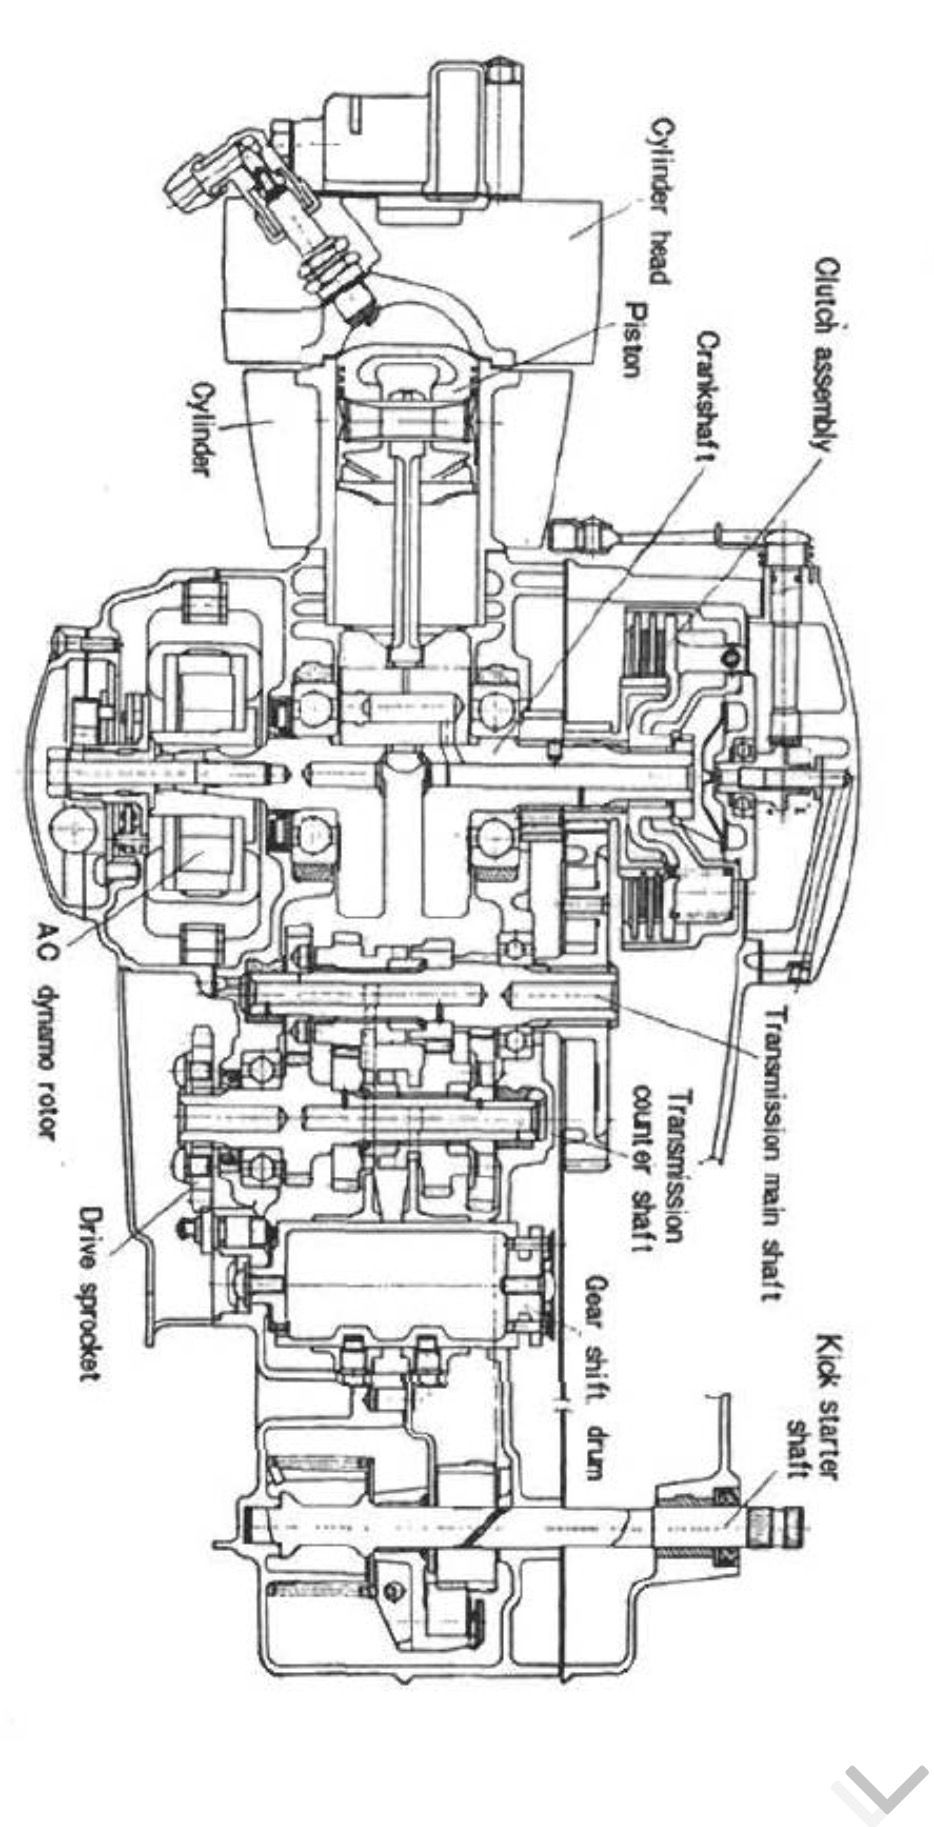 Honda C200 Engine: 87 cc (49 x 46 mm) ohv single. Crankshaft supported by  journal ball bearings; caged roller big-end bearing, cast-iron cylinder  head and ...